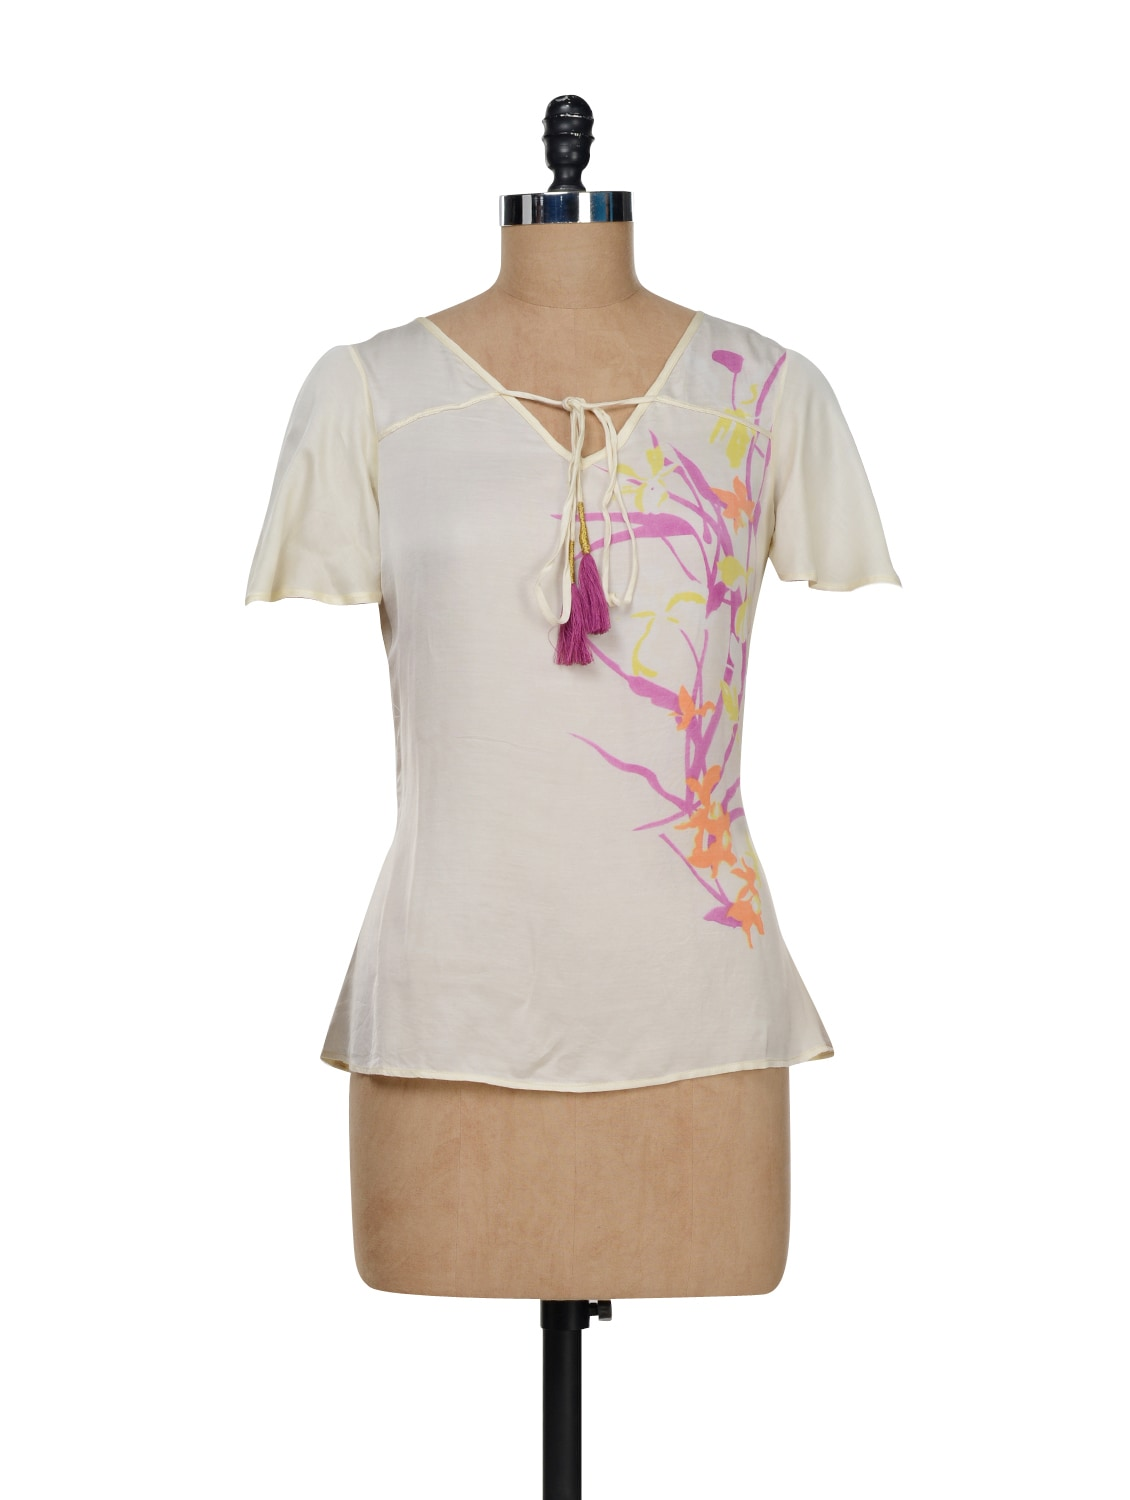 Silk Top With Tie Up Detailing - I AM FOR YOU